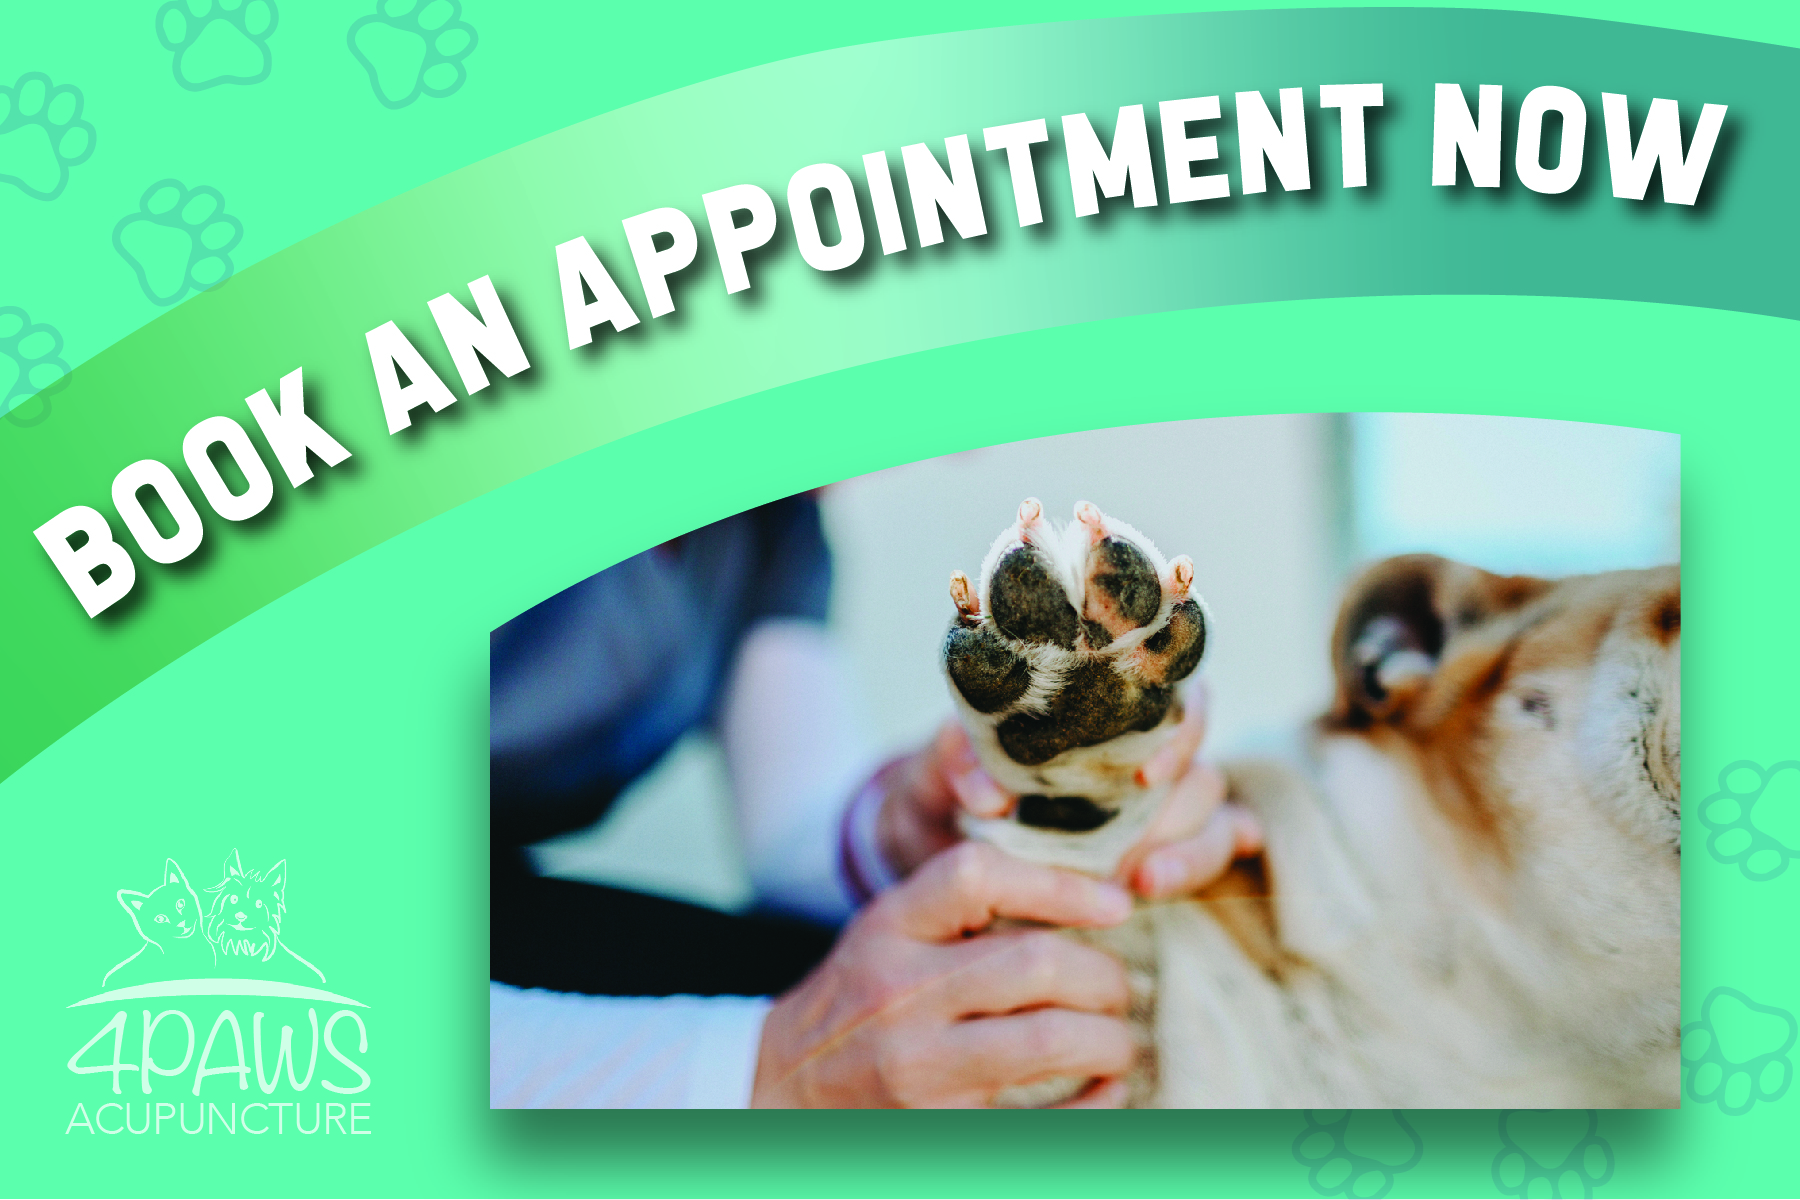 book an appointment @2x-100.jpg